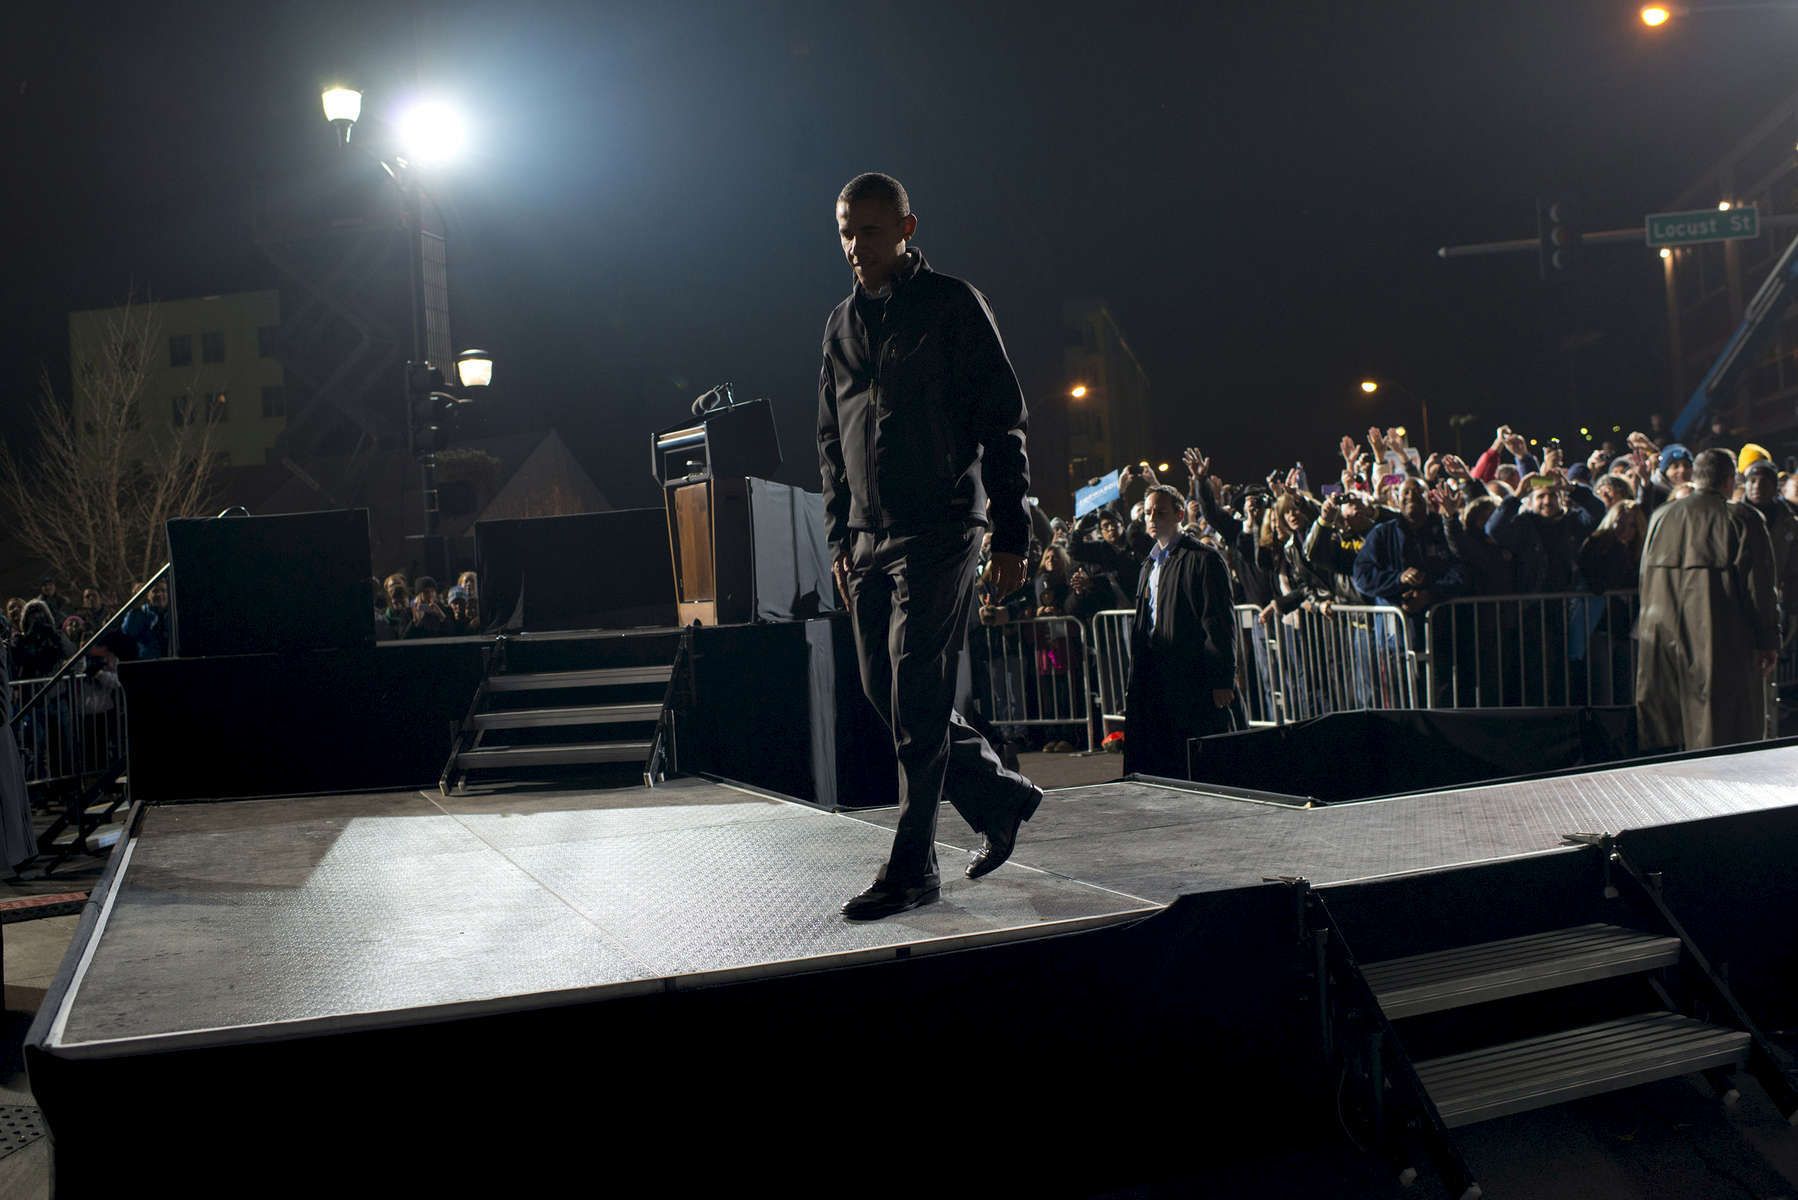 November 5, 2012 - Des Moines, IA:  President Barack Obama walks offstage after his last ever campaign event the night before the 2012 election. (Scout Tufankjian for Obama for America/Polaris)